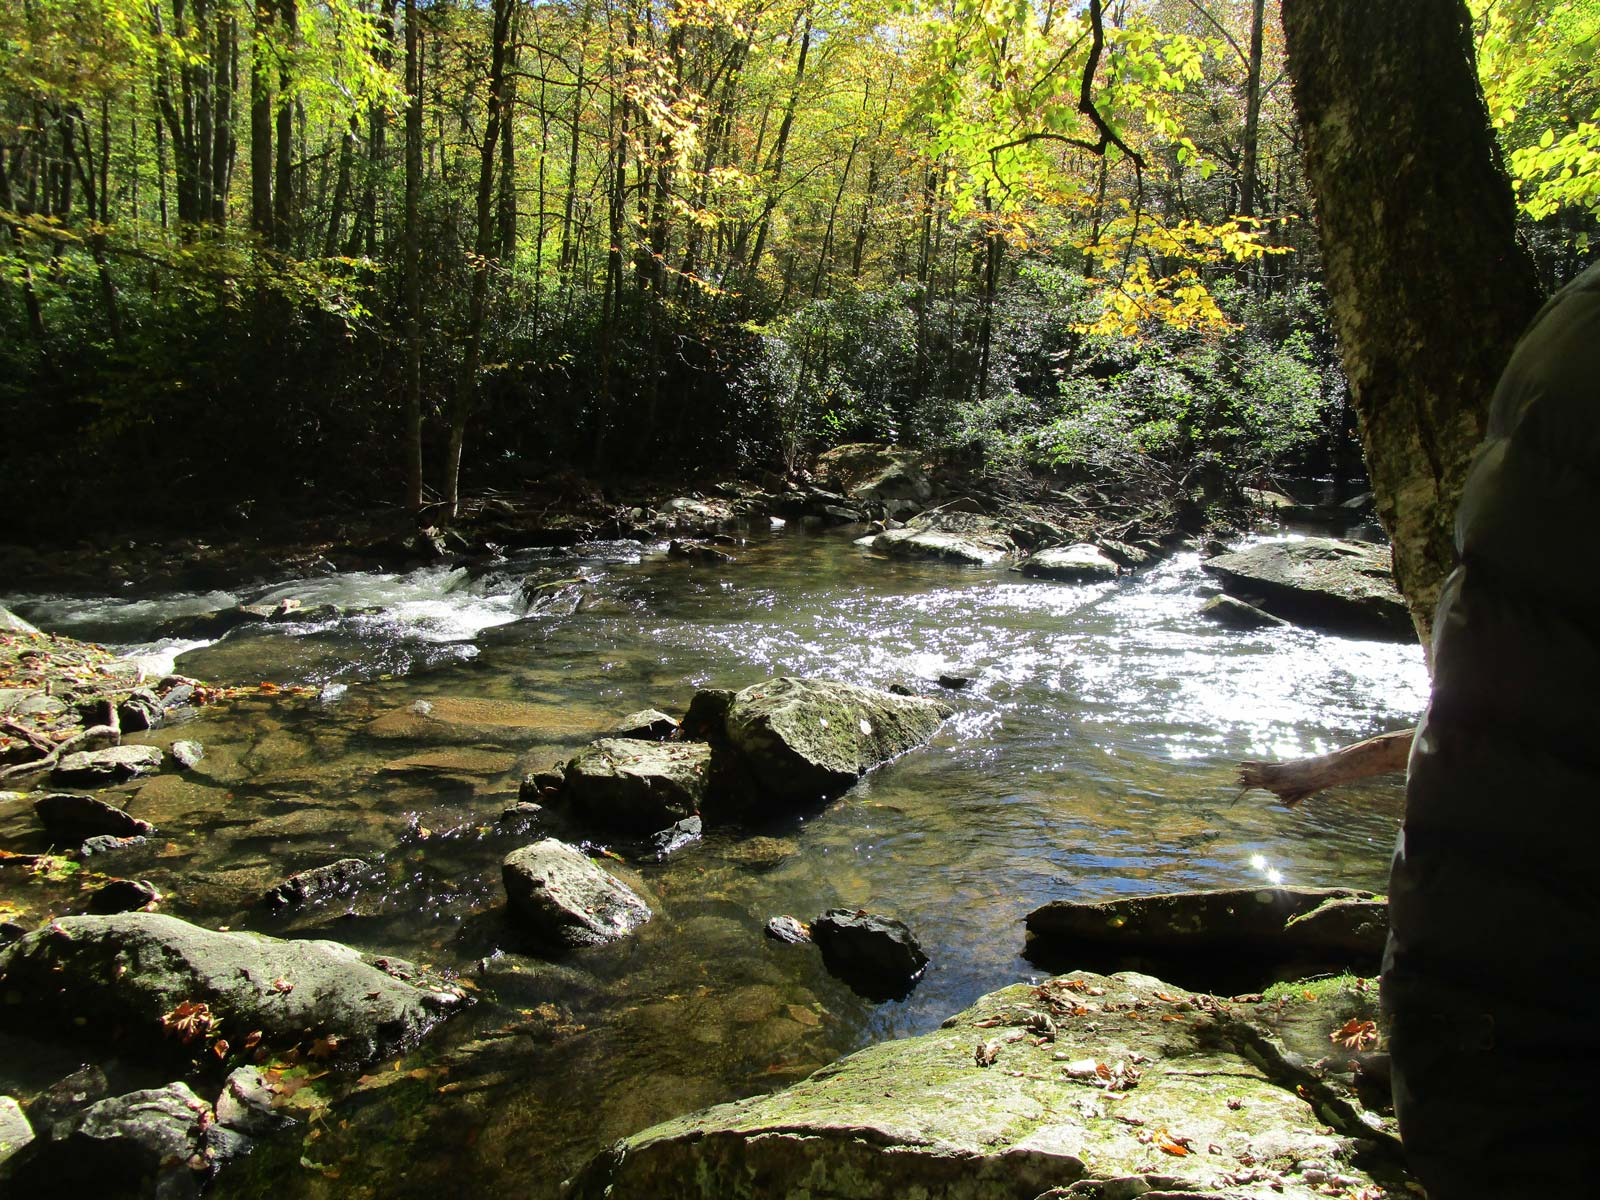 Rhododendrons and creek on the Boone Fork Trail near Julian Price Campground, off Blue Ridge Parkway, North Carolina